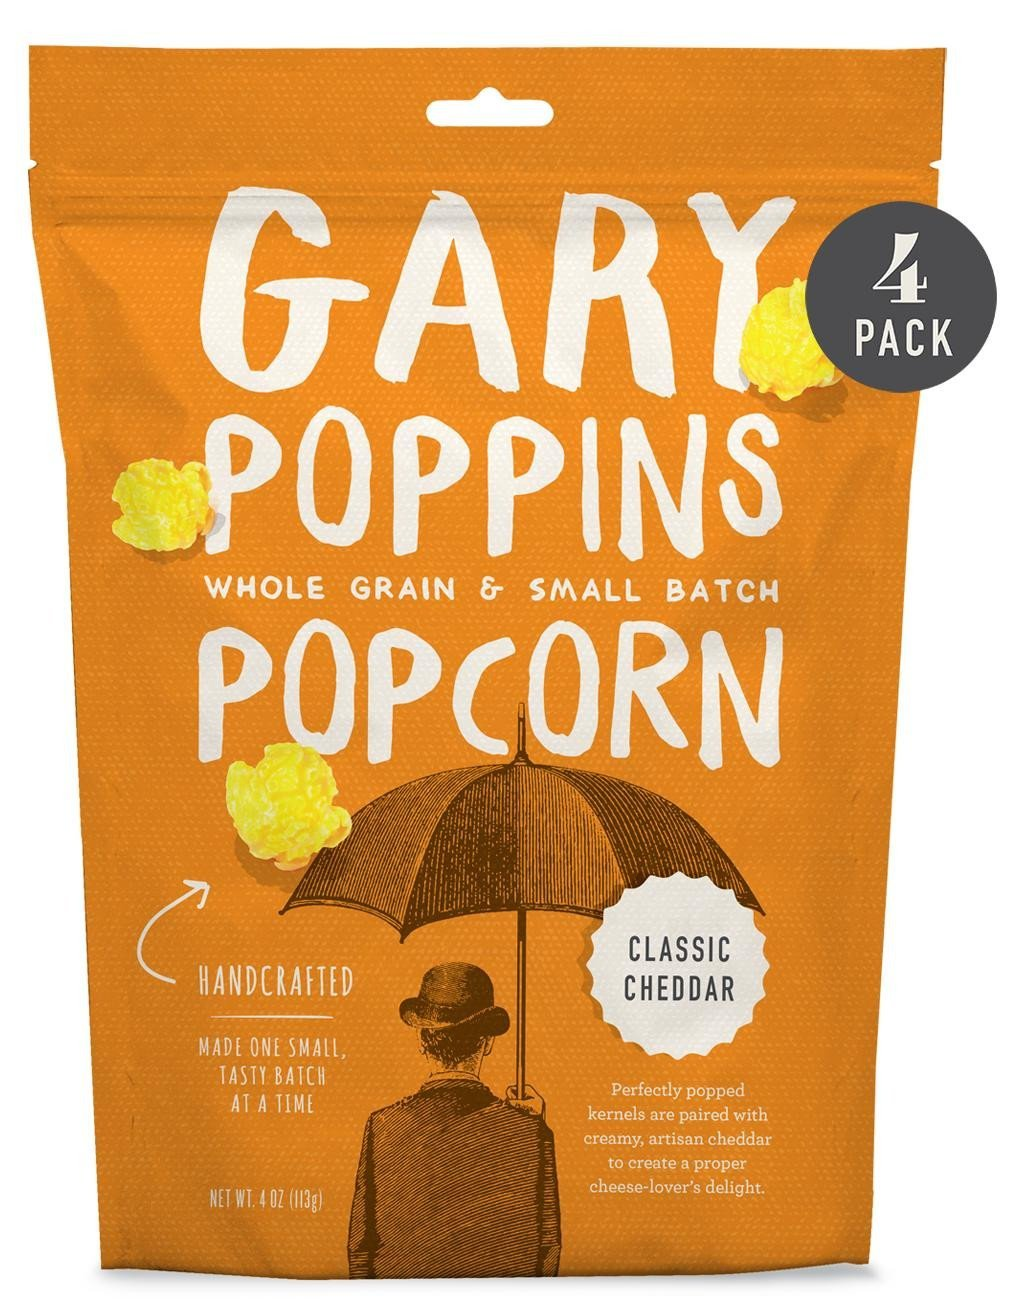 Classic Cheddar - Gourmet Popcorn - Resealable - 4 Pack